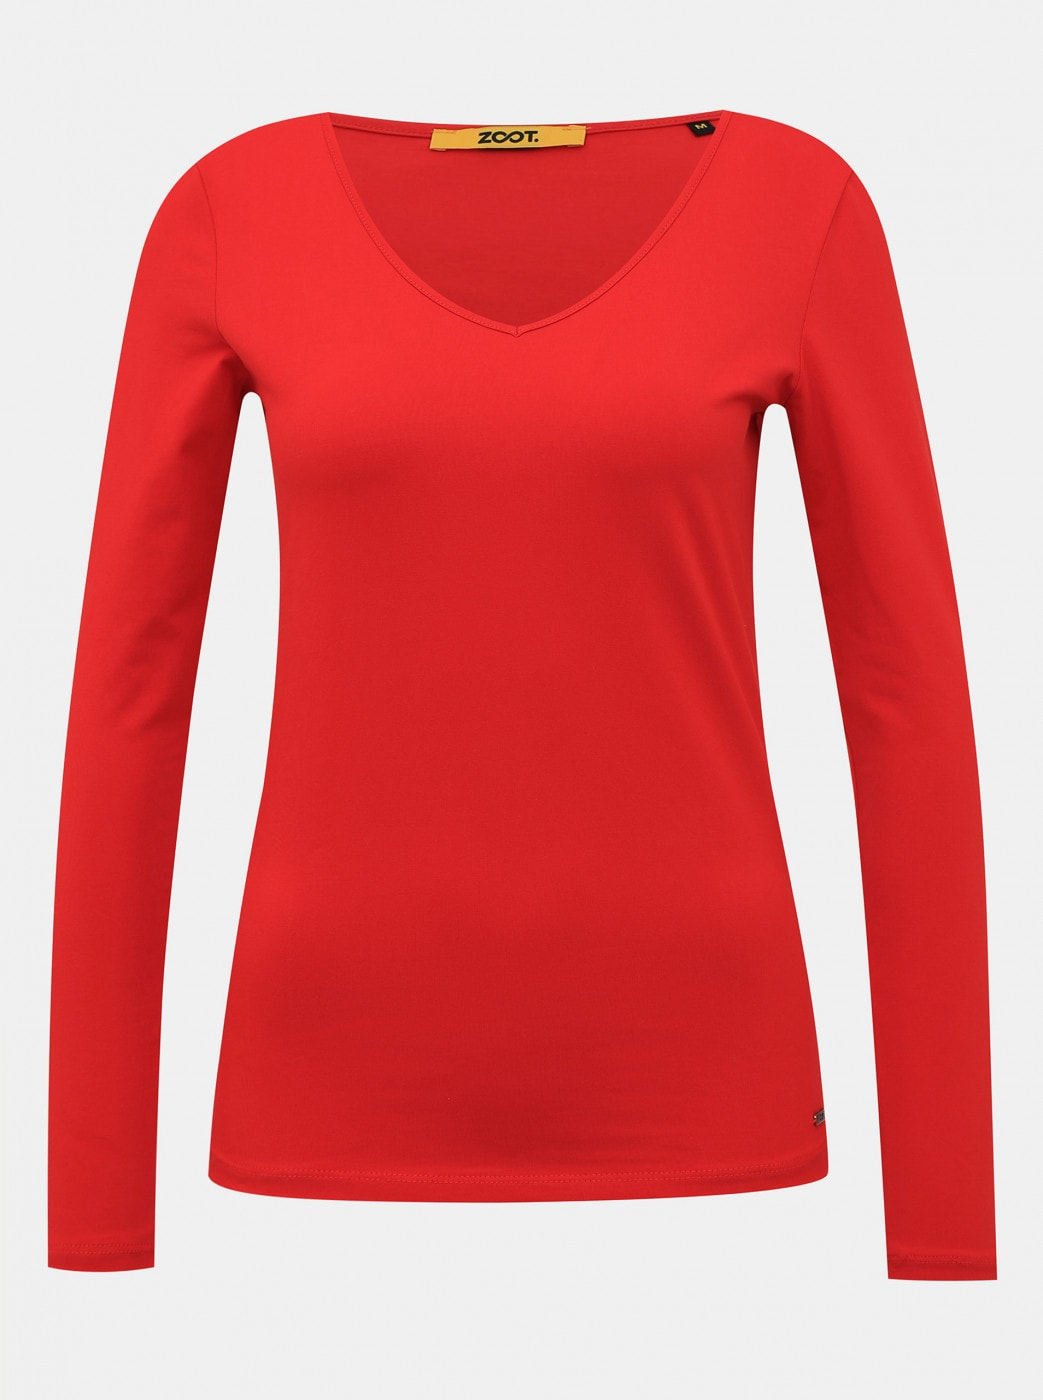 Red Women's Basic T-Shirt ZOOT Baseline Tamara